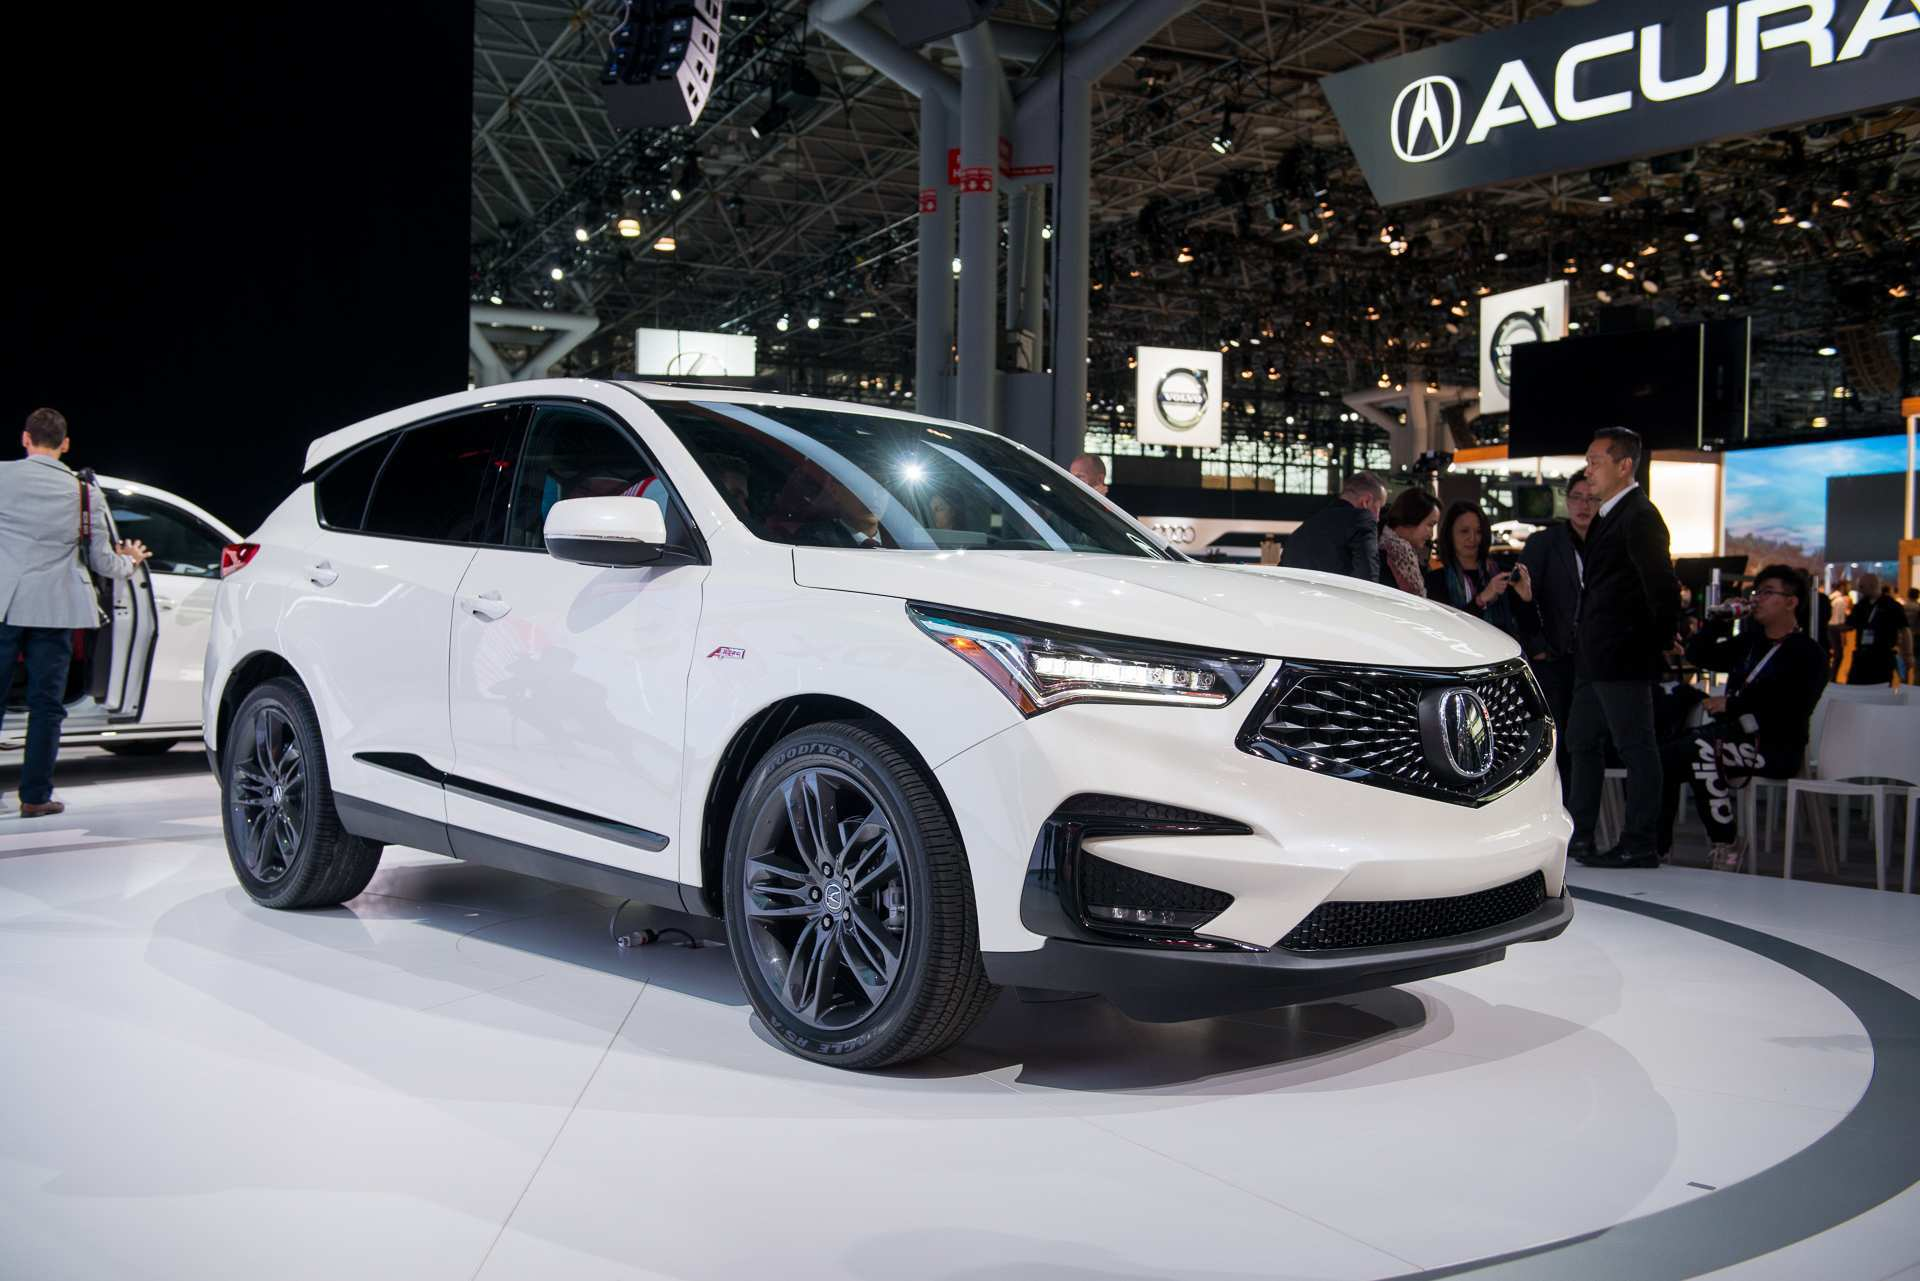 26 Best Review New Acura Rdx 2019 Option Packages Review And Specs Performance and New Engine with New Acura Rdx 2019 Option Packages Review And Specs